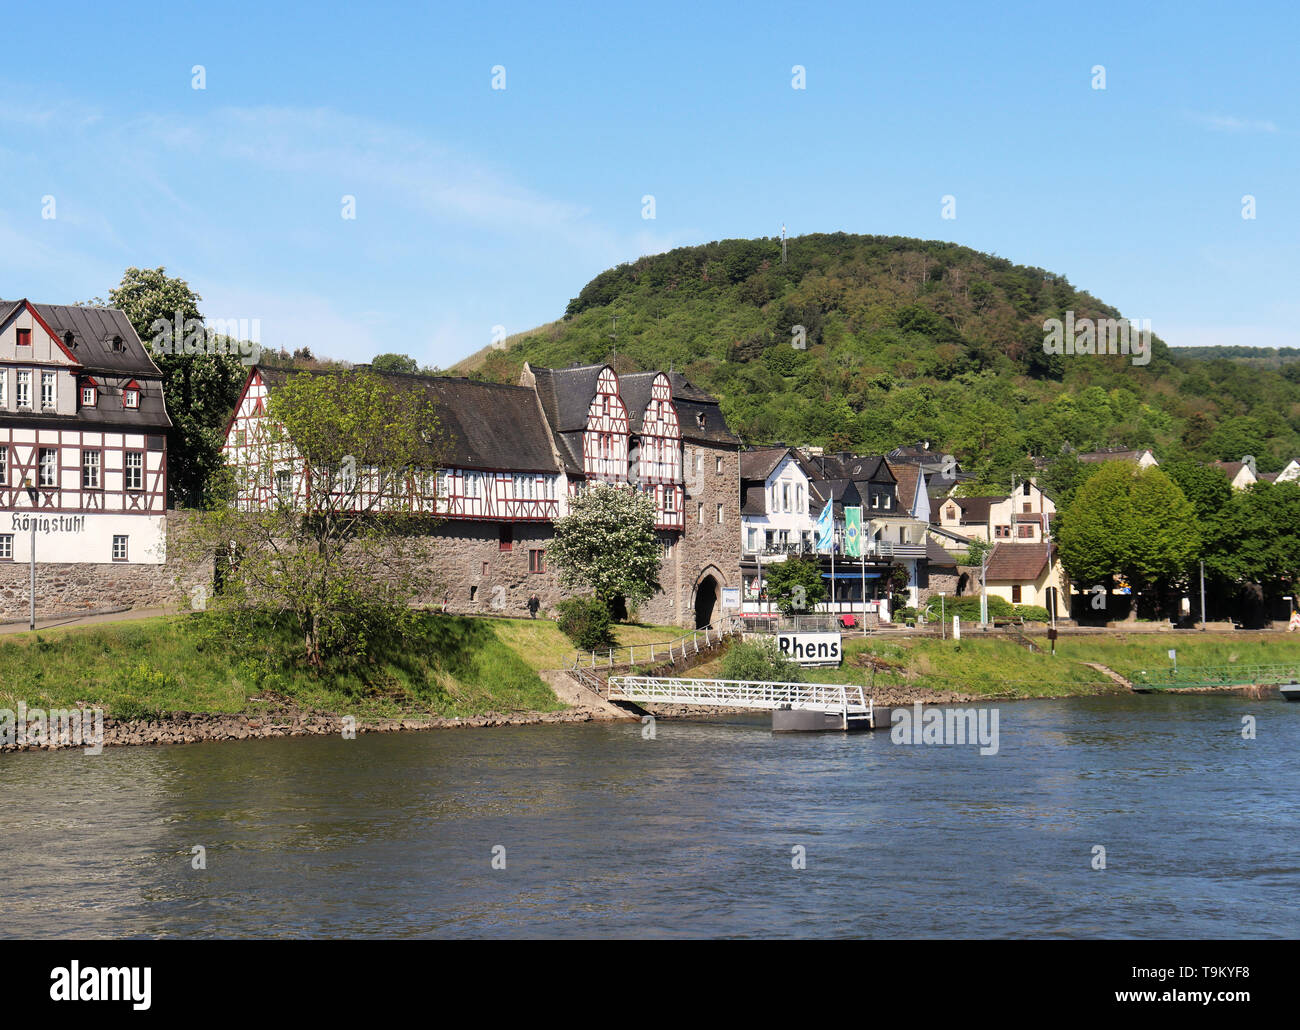 Riverside village of Rhens on the Rhine river in Germany Stock Photo